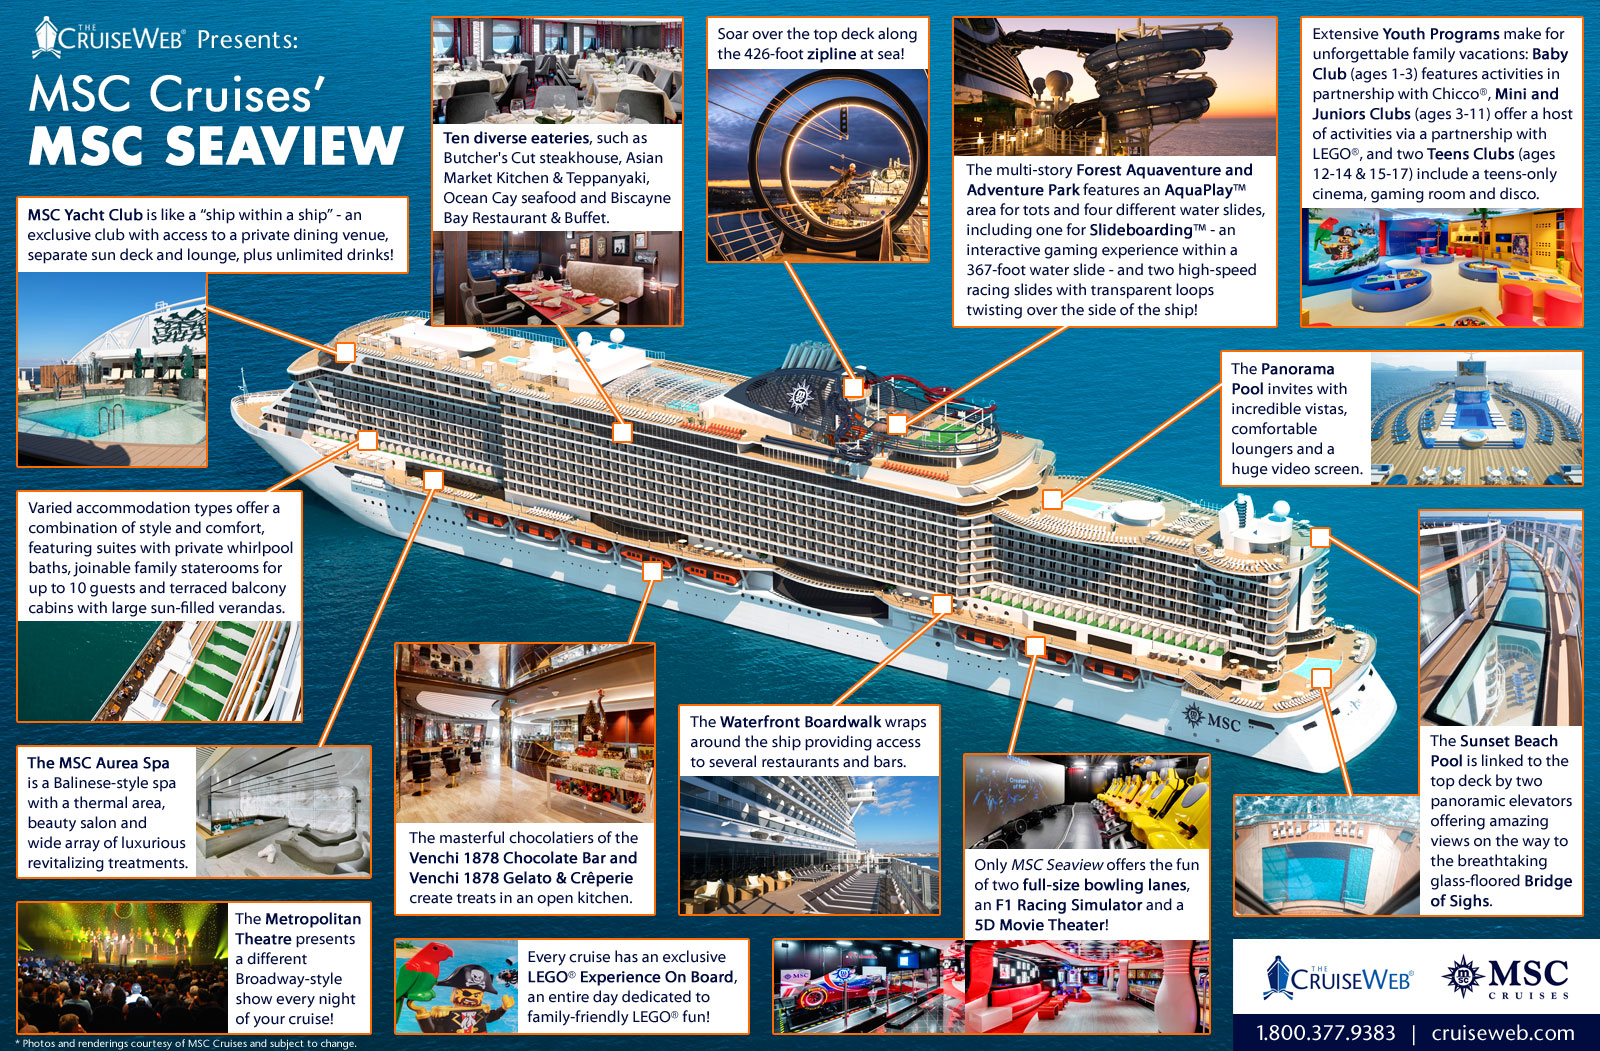 Explore Msc Cruises Newest Cruise Ship Msc Seaview With